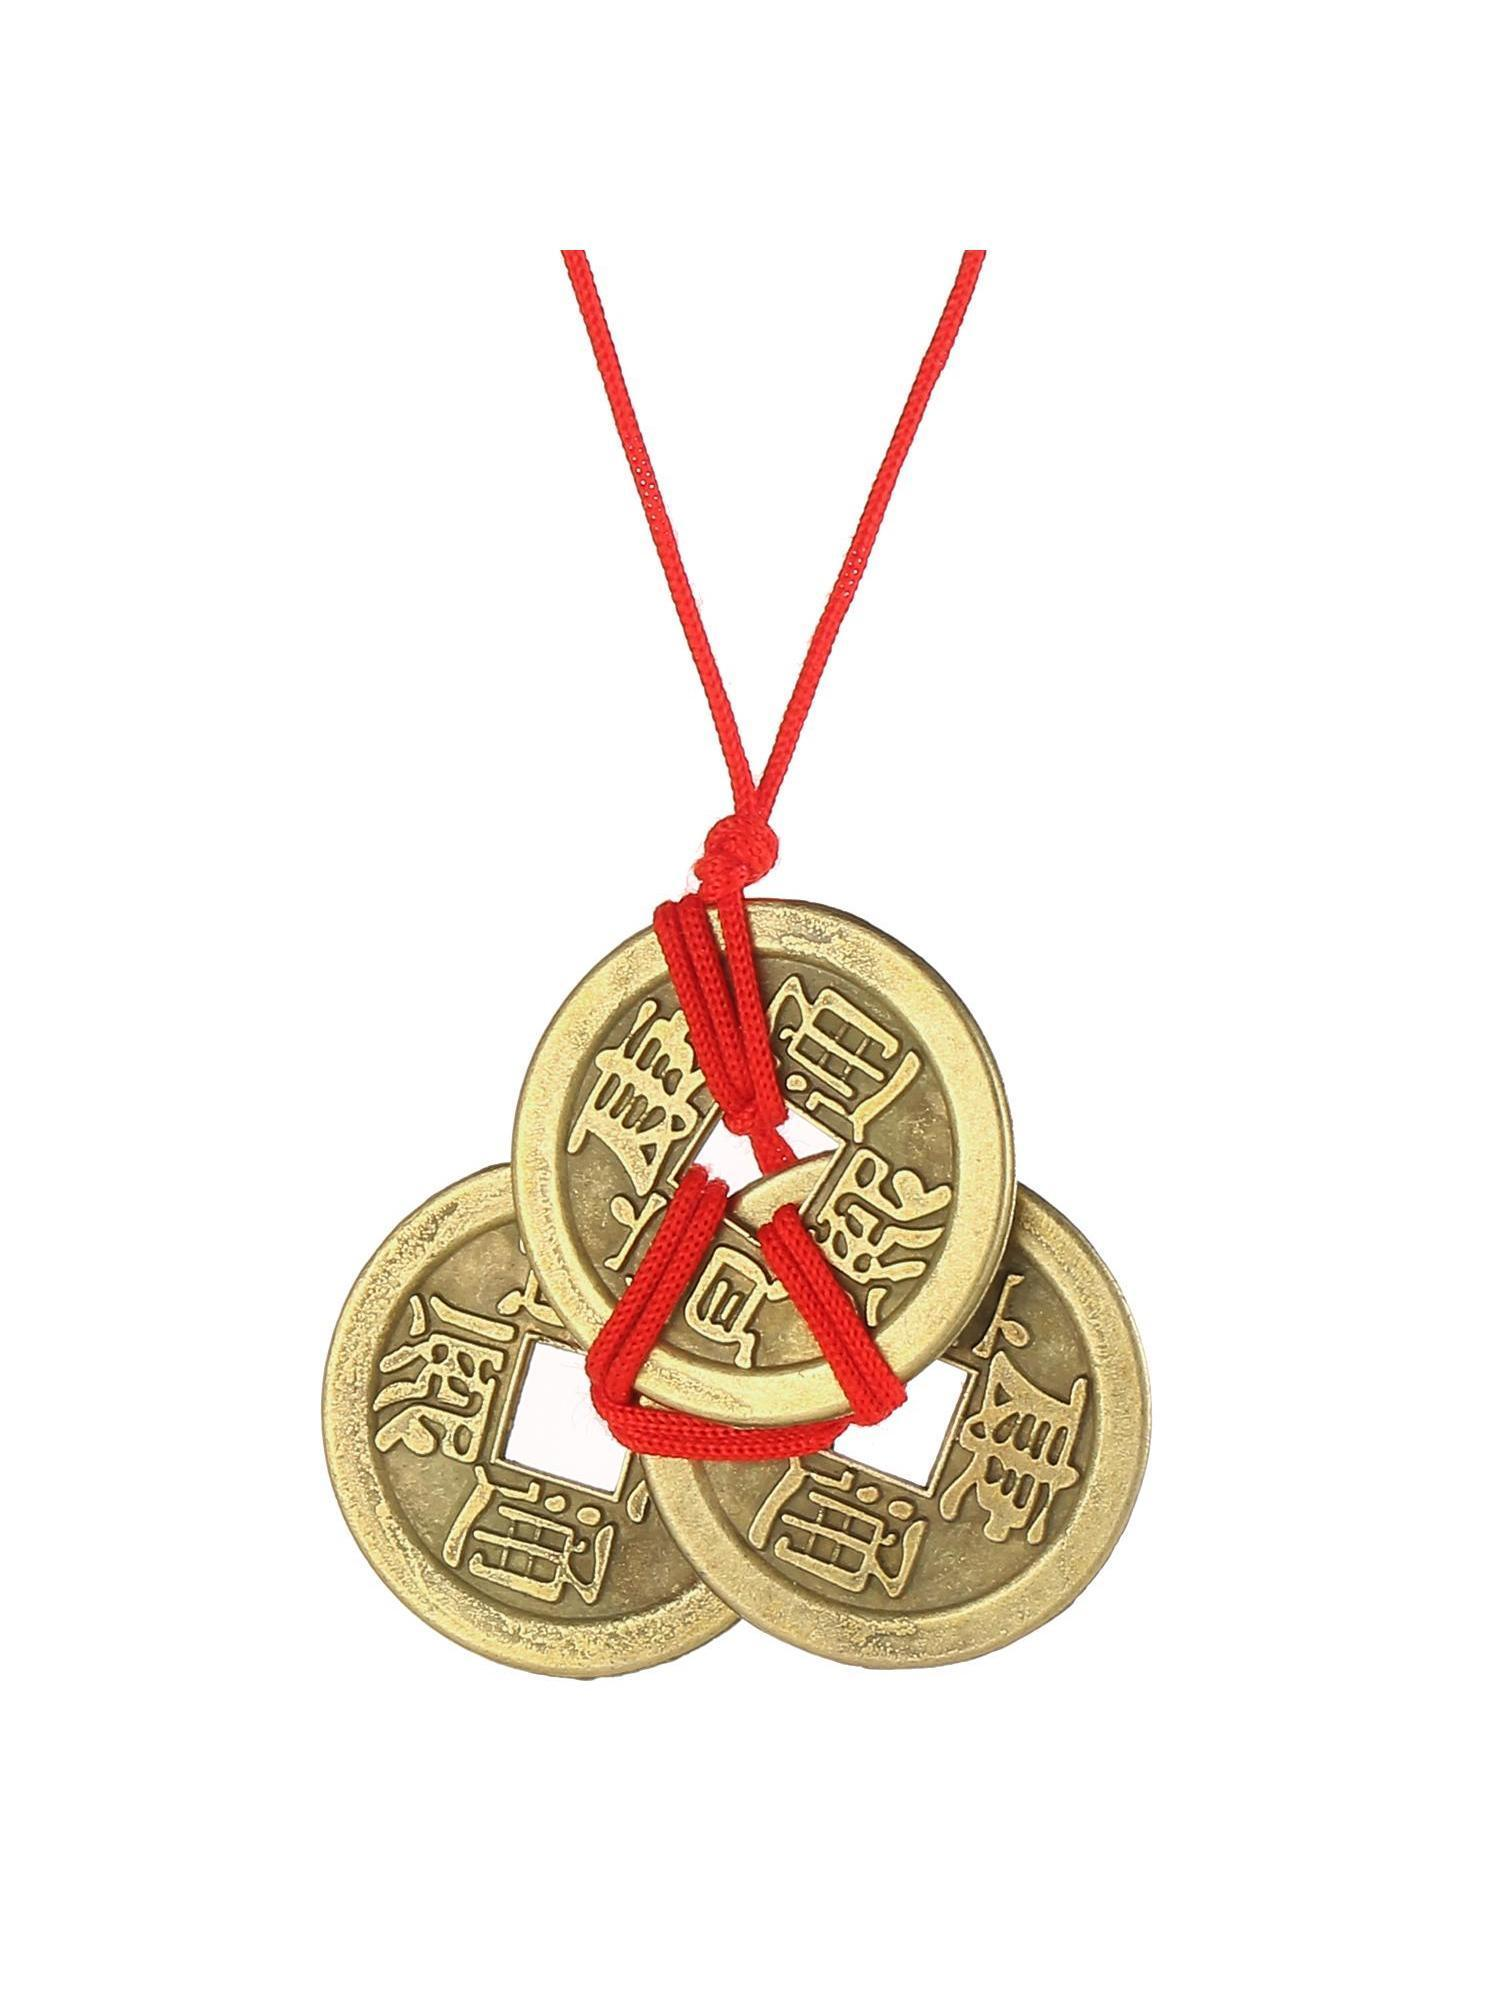 CLEARANCE! Emperor Amulet Coins For Wealth And Lucky Collection Brass Money Coin SPHP